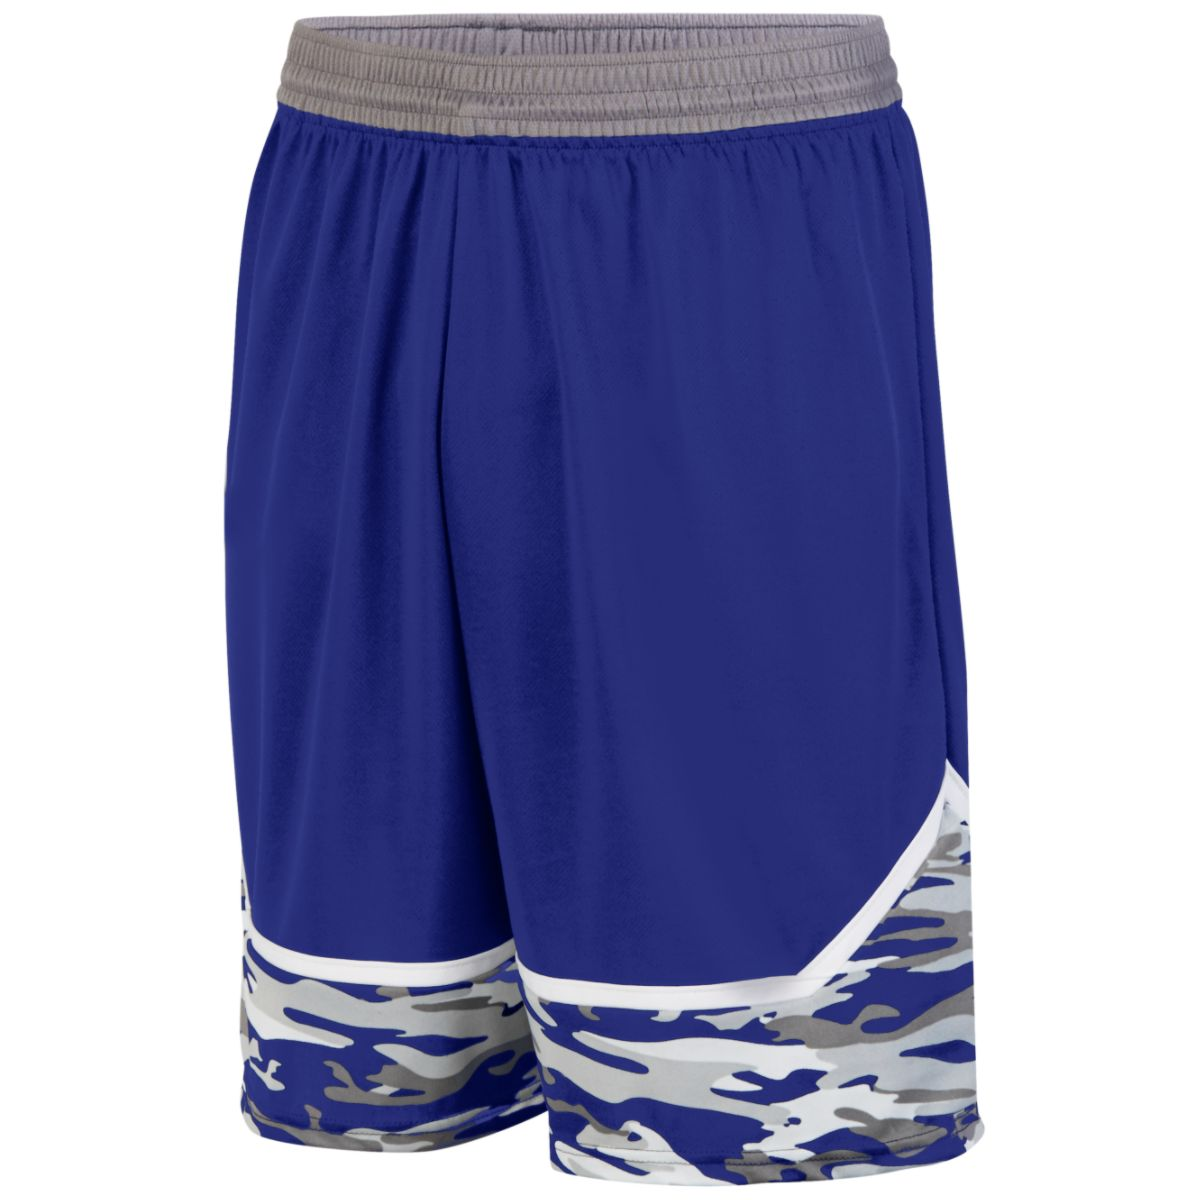 Augusta Mod Camo Game Short Pugtwh L - image 1 of 1